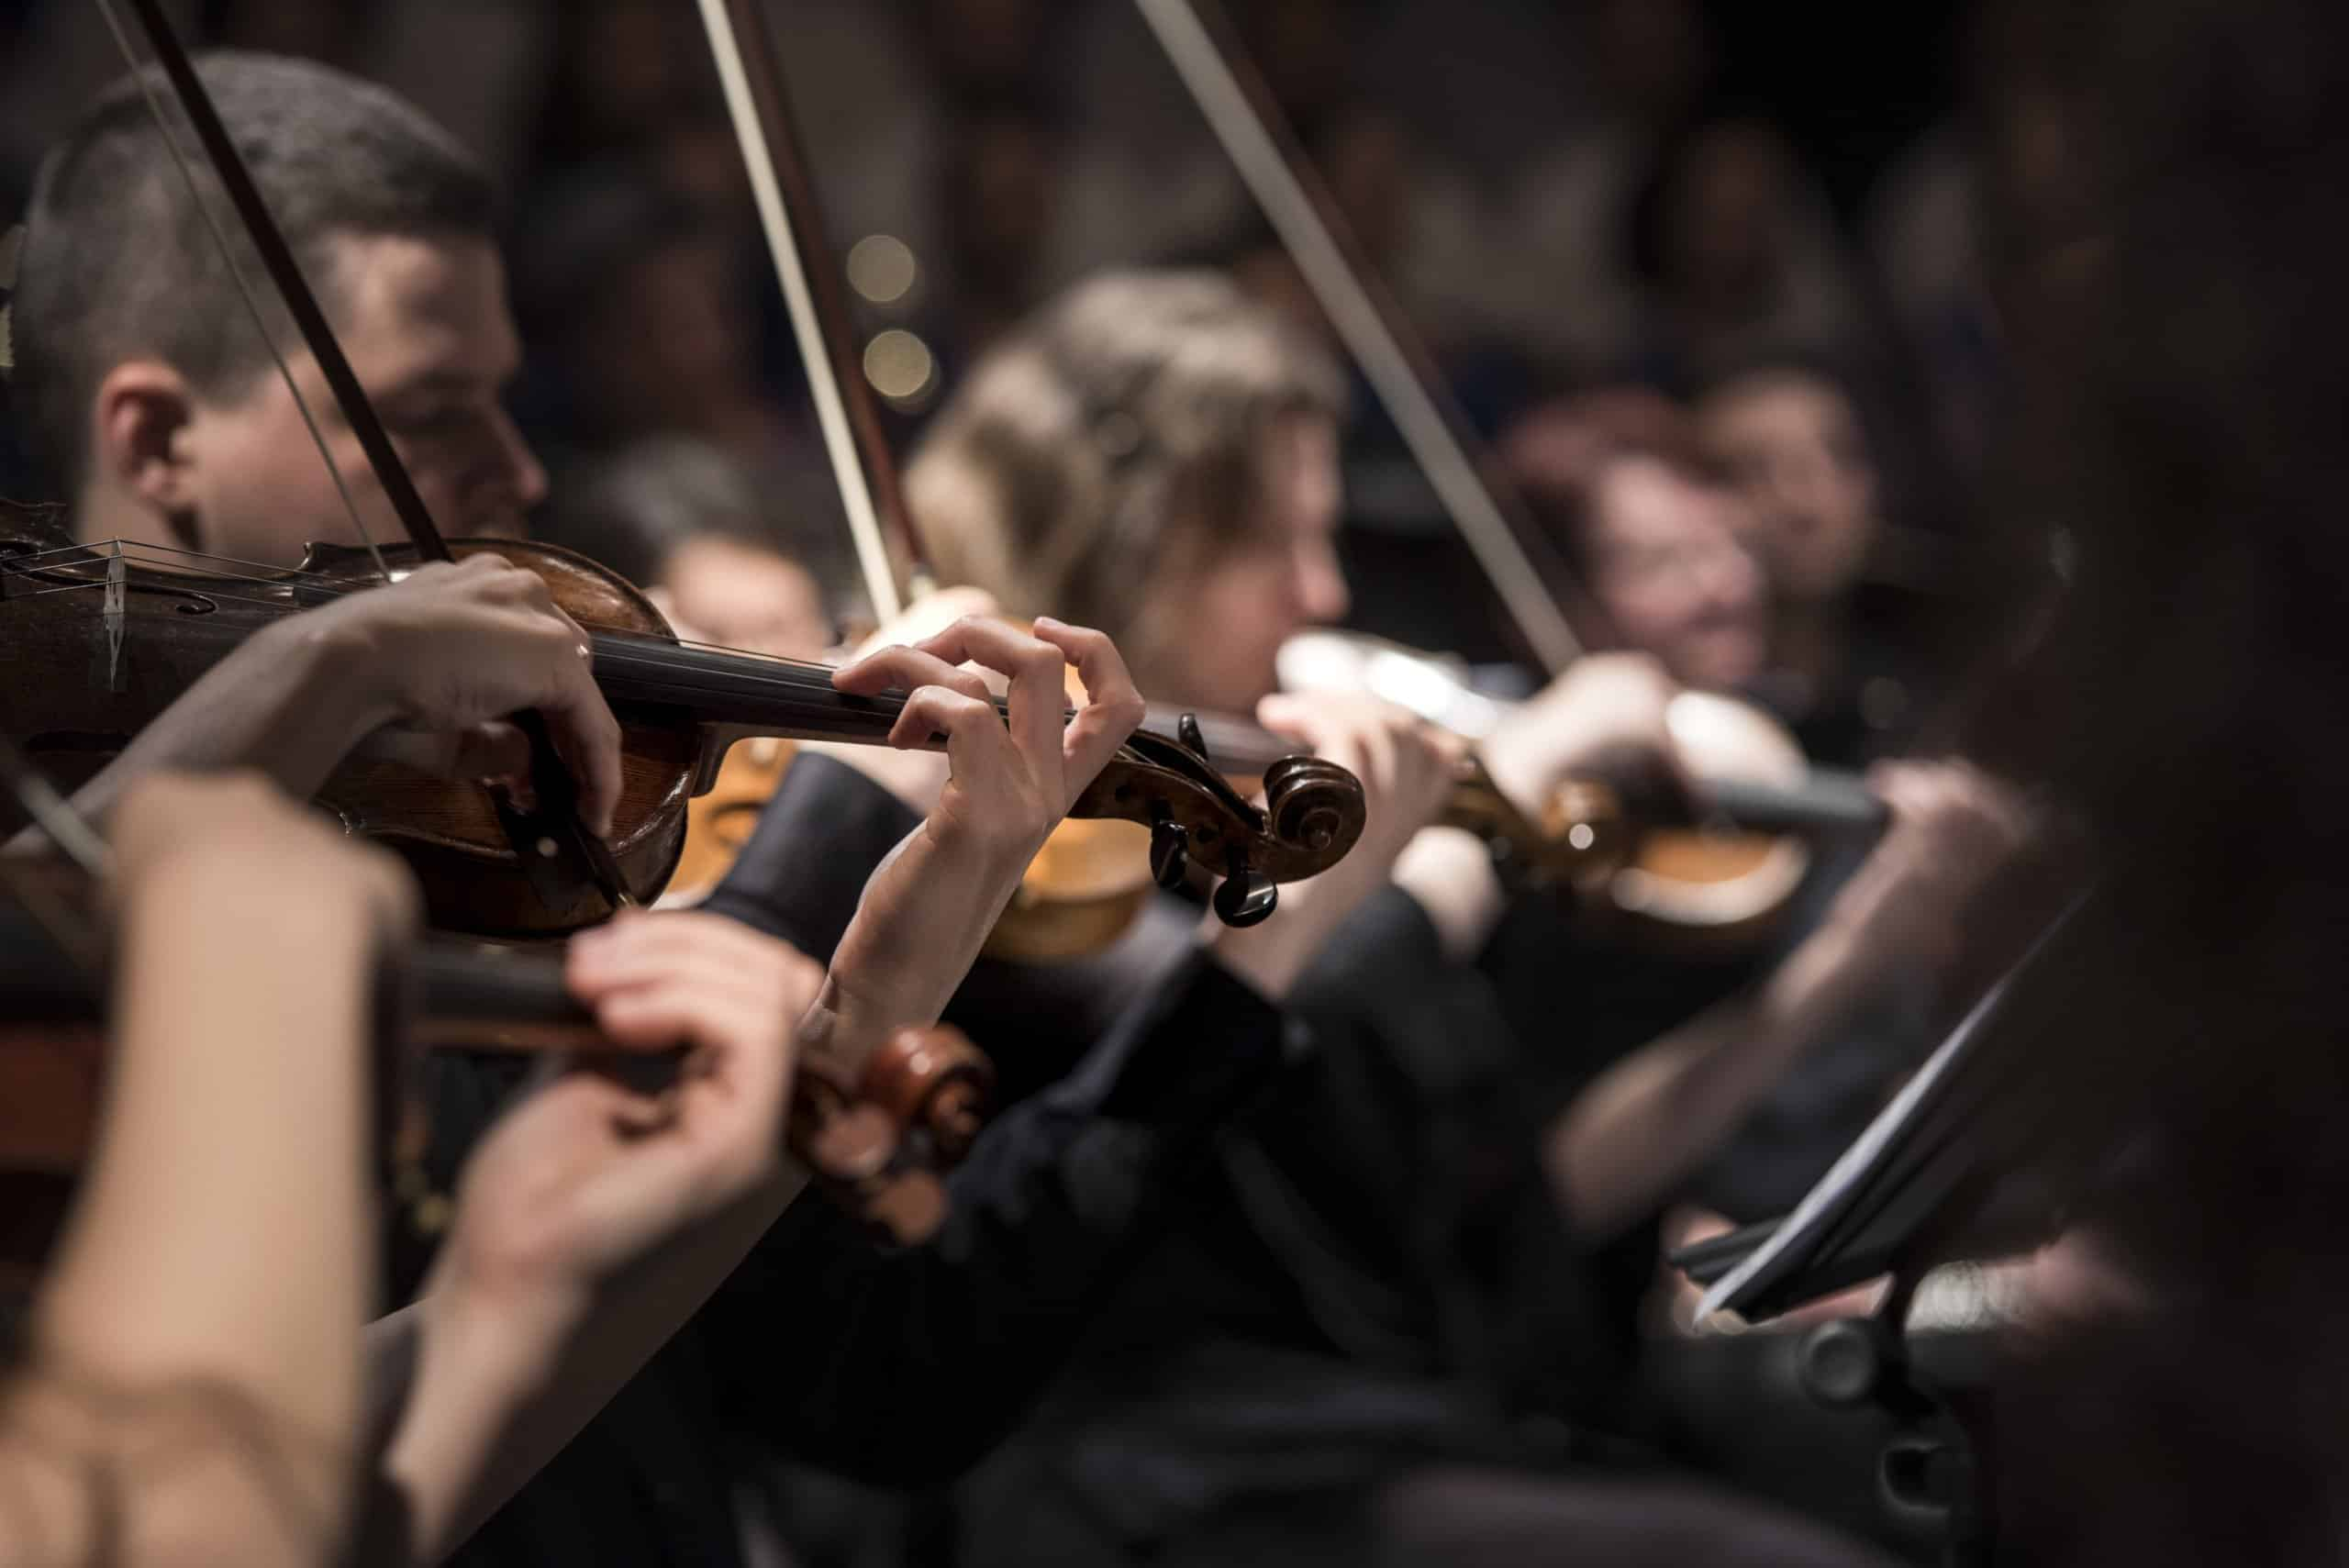 image of violin section of orchestra